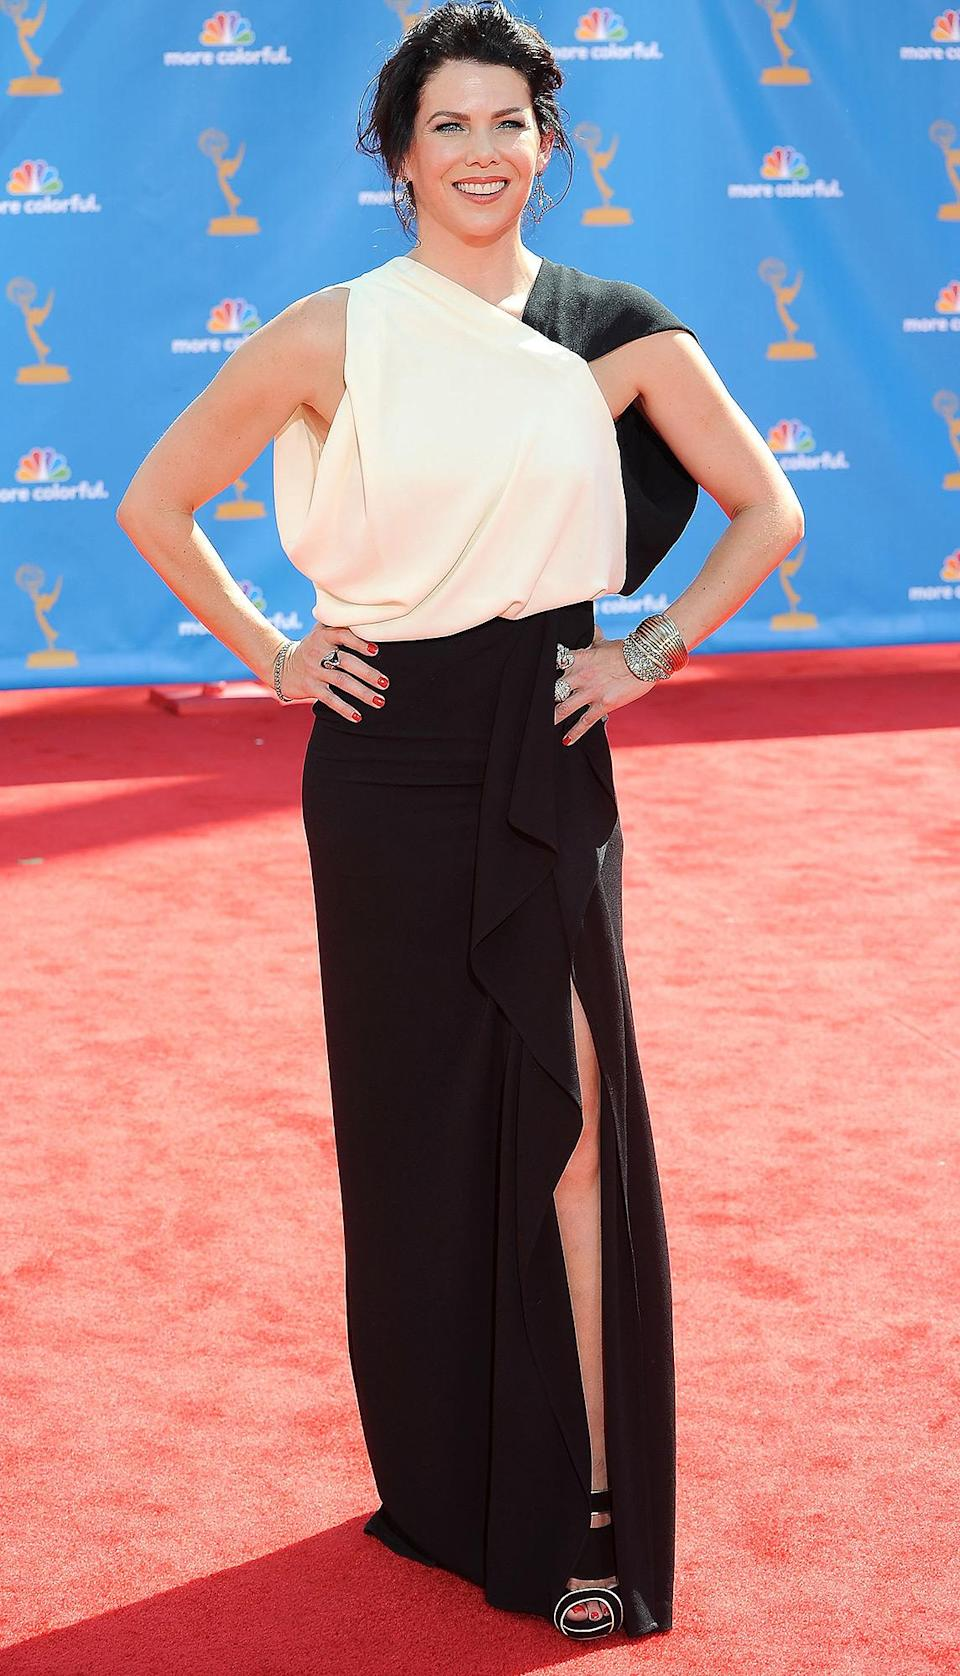 <p>Lauren Graham, then starring in her new series <em>Parenthood</em>, rocked a colorblock gown to present an award at the event.</p>